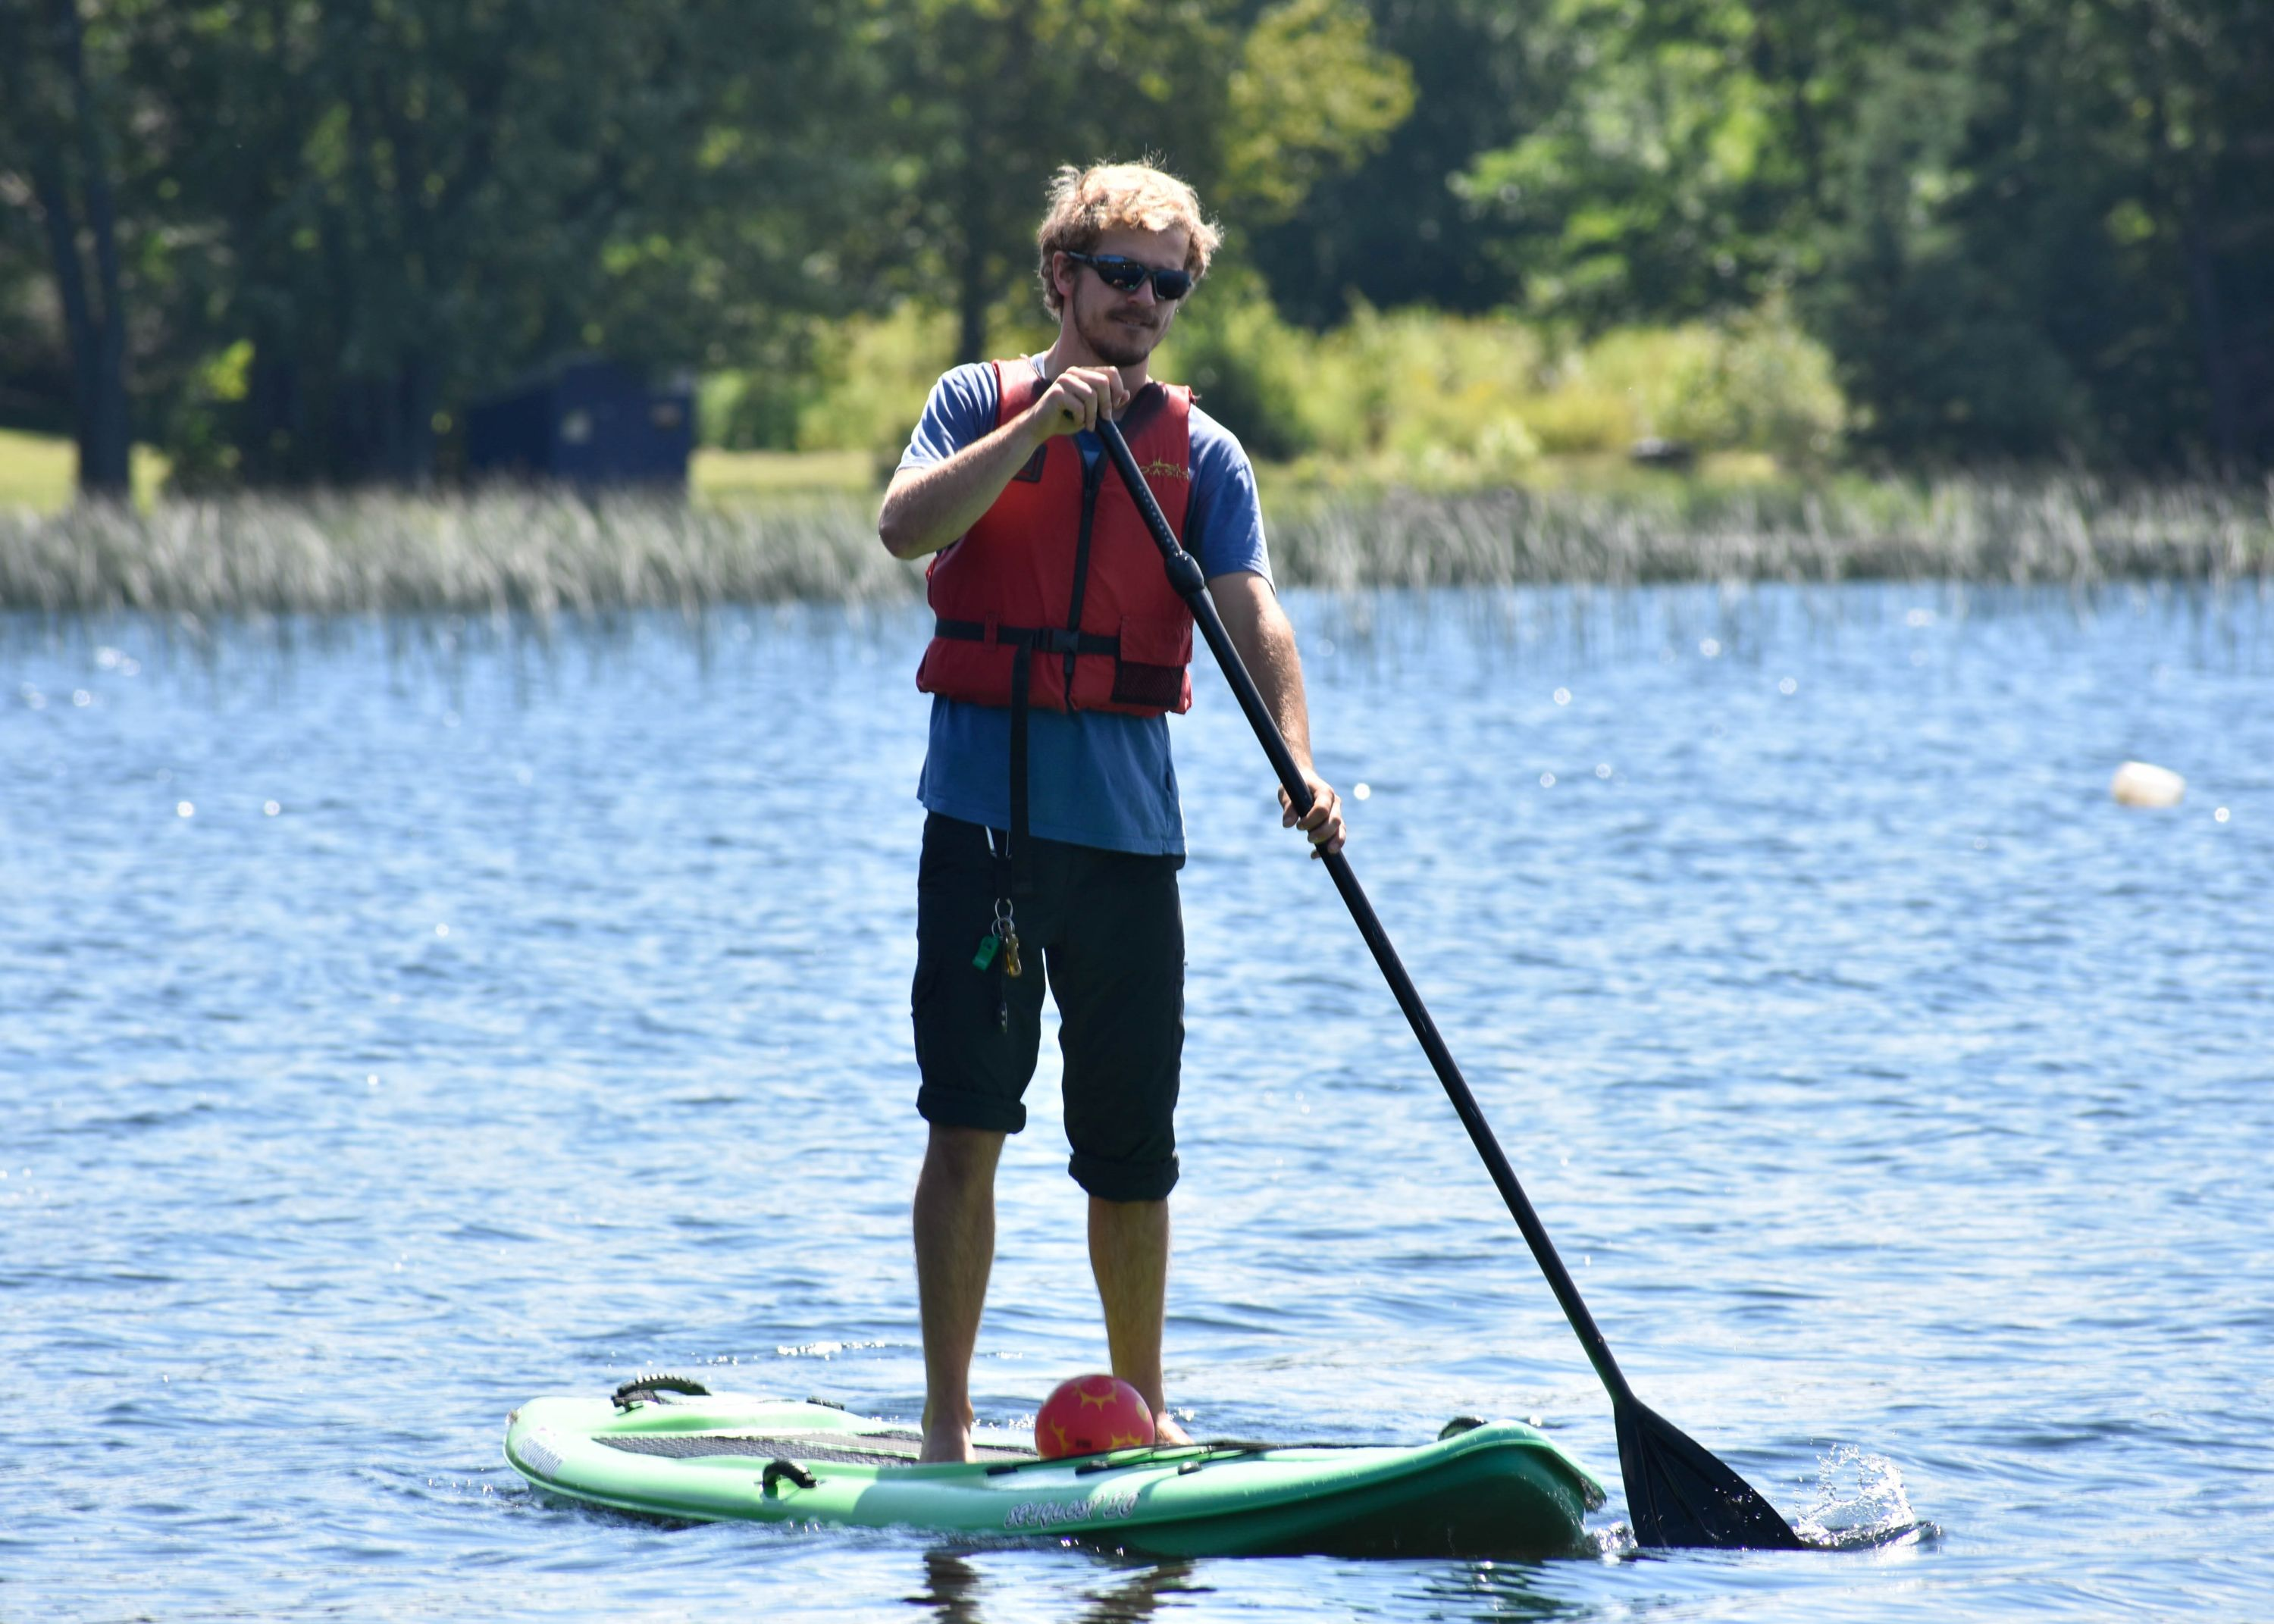 Staff paddling a stand up paddle board on lake in West Guilford, Ontario's Christian Adventure Summer Camp